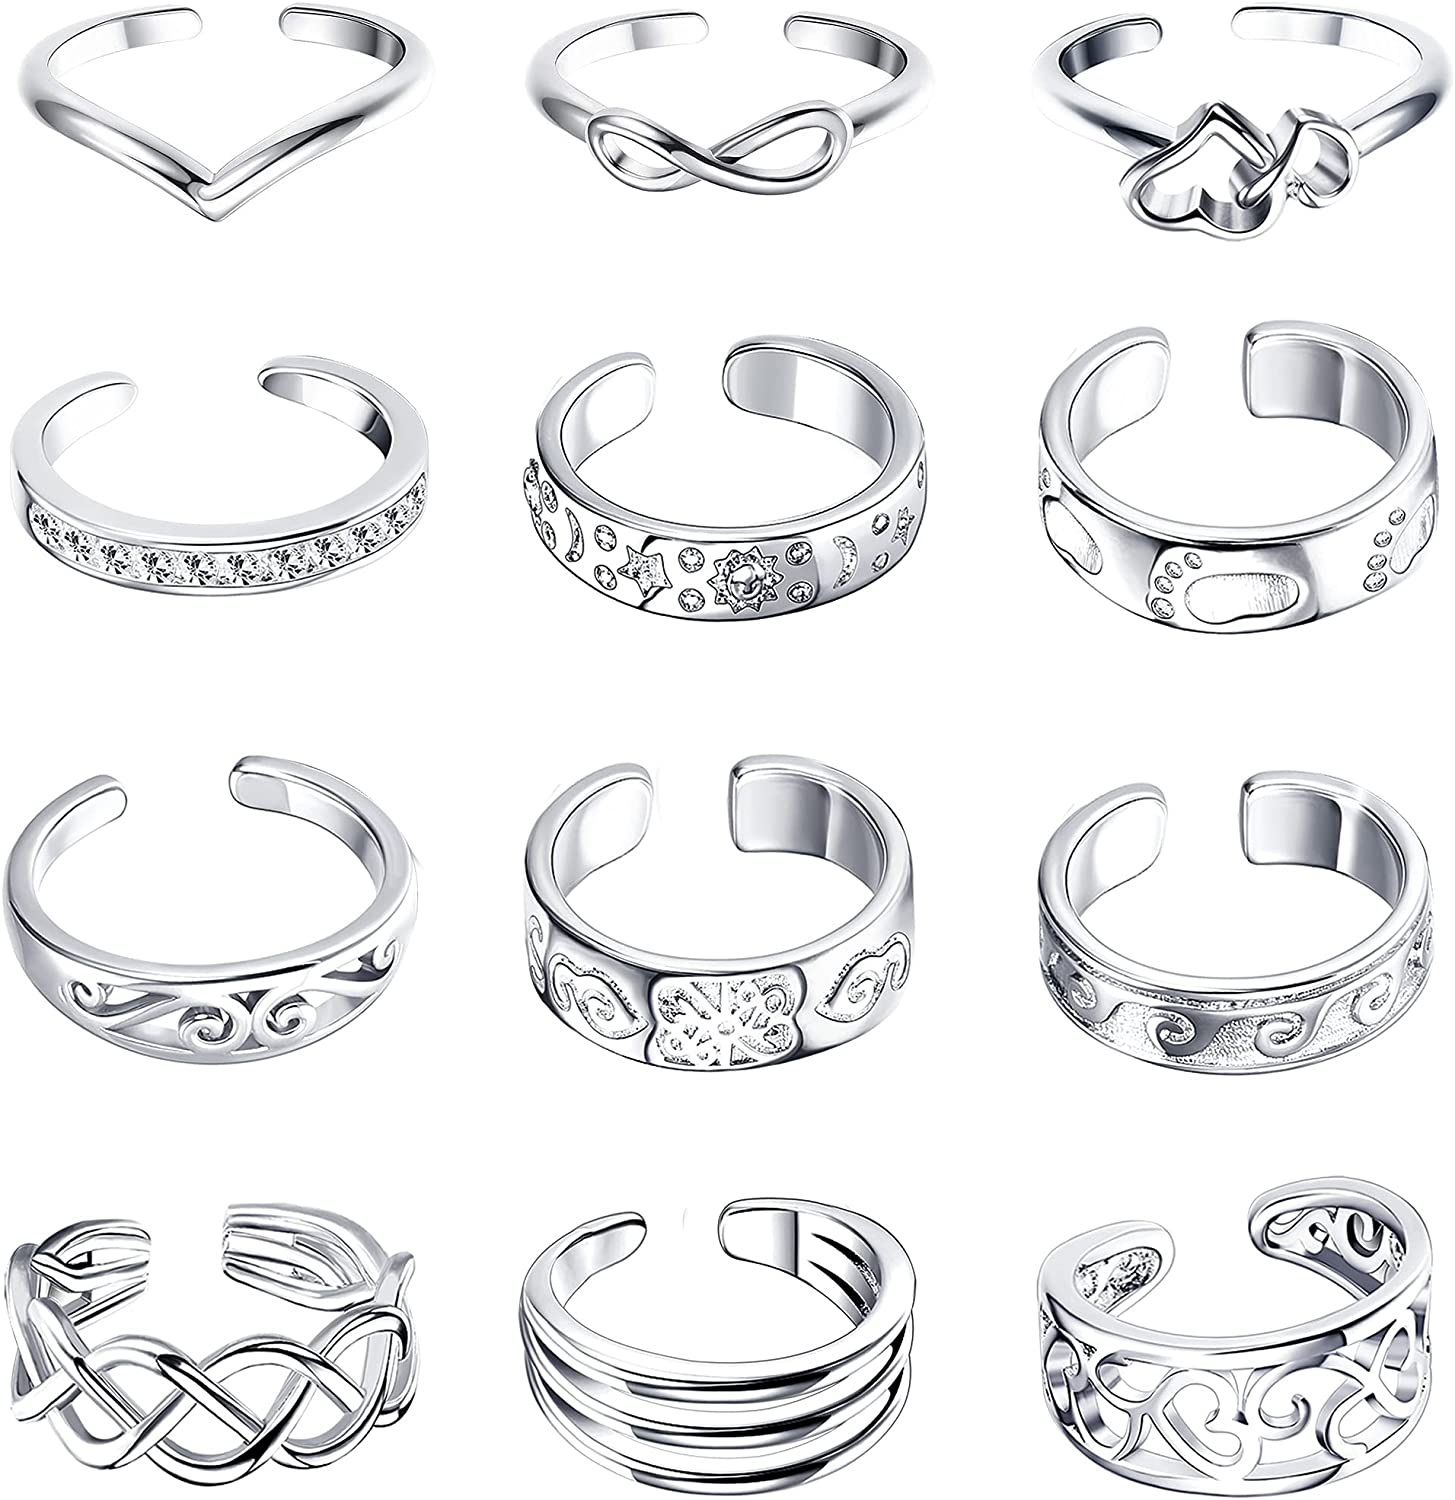 LOYALLOOK 12PCS Adjustable Toe Rings for Women Summer Beach Open Toe Rings Set Barefoot Pinky Tail Ring Hollow Flower Heart Sun Star Band Foot Ring